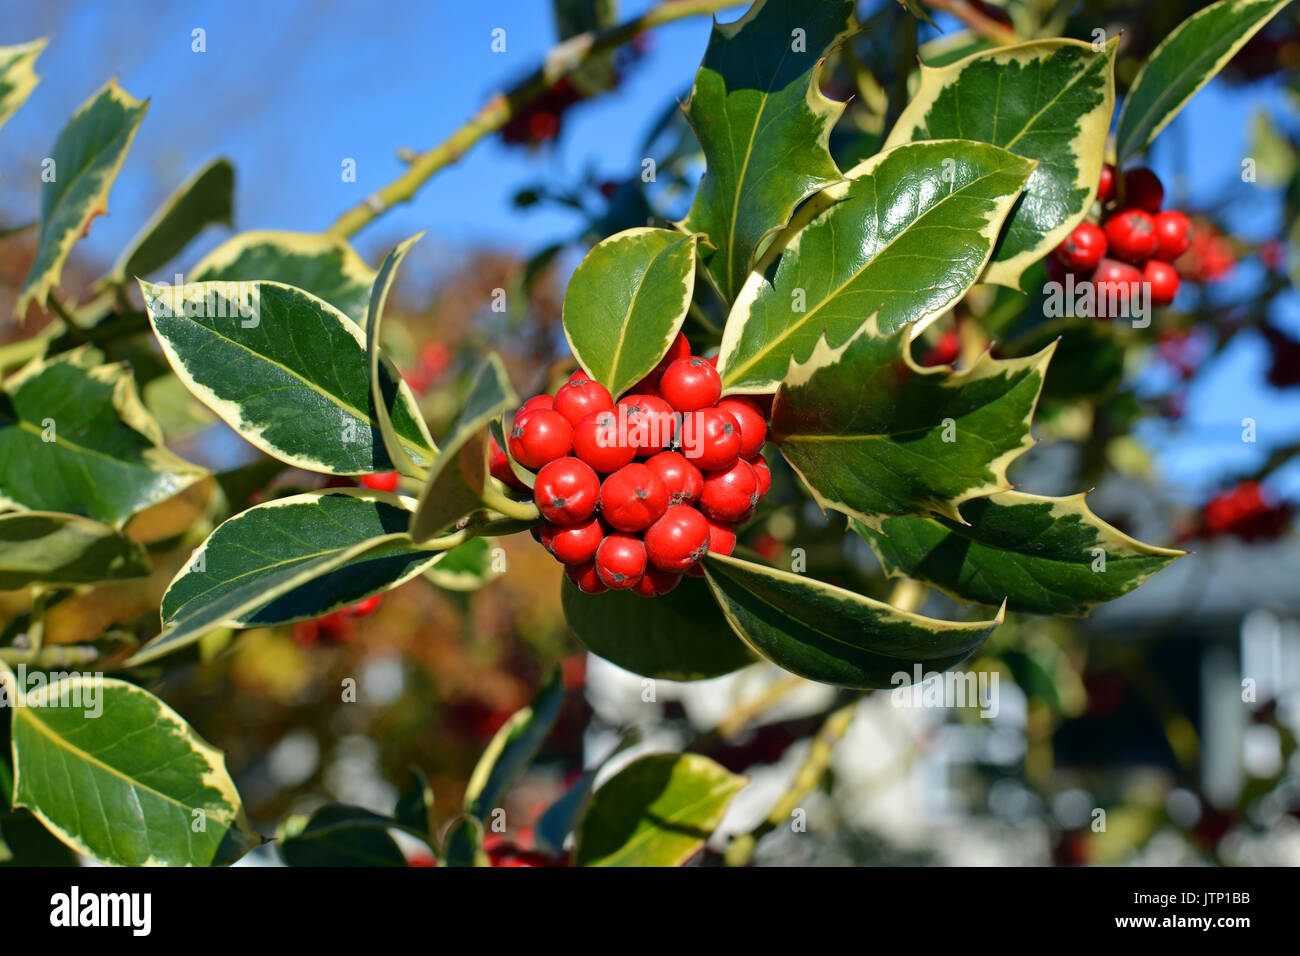 Christmas Holly Tree Part - 20: Closeup View Of Christmas Holly Tree With Clusters Of Red Berries And  Variegated Green Leaves And